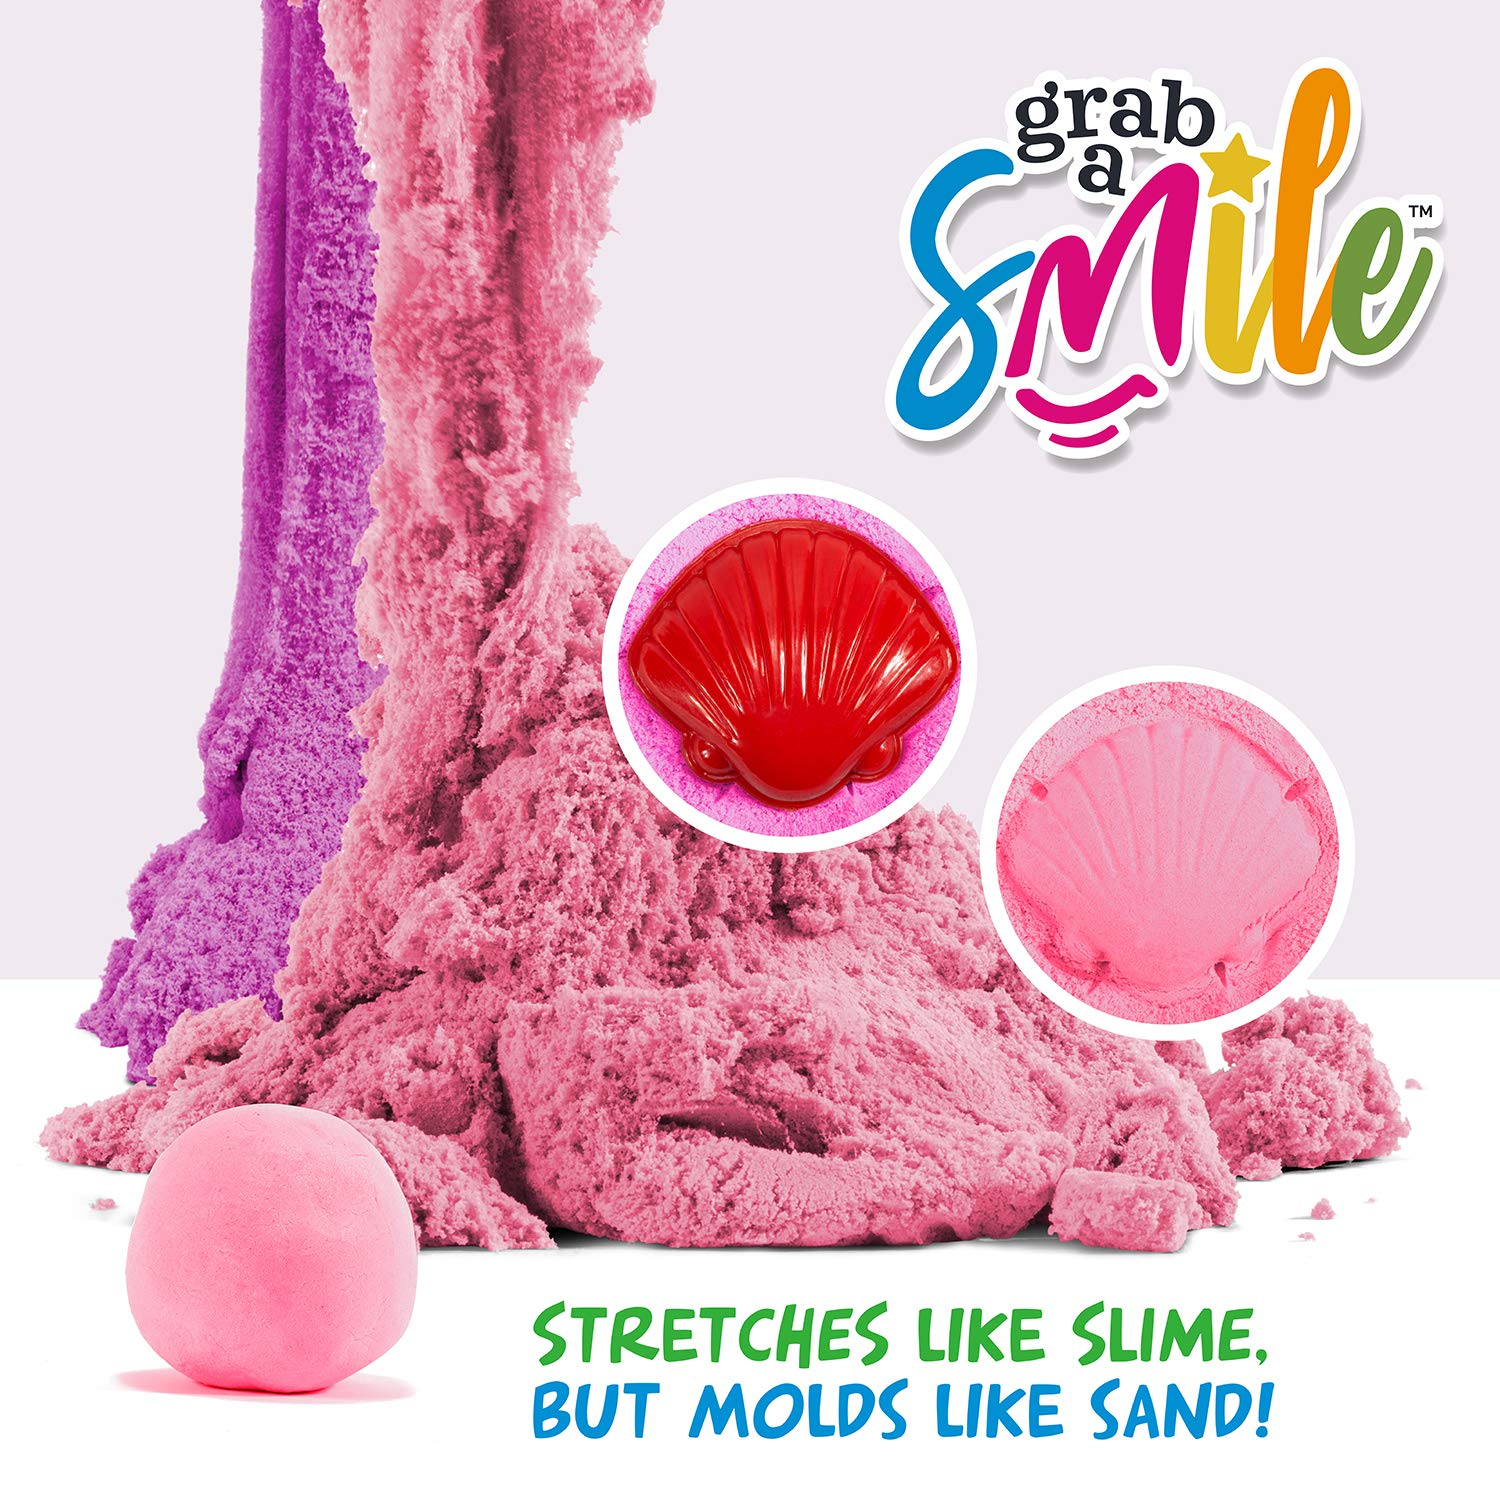 1.1 Lbs Non-Sticky Pink Glitter GRAB A SMILE Stretchy Sand Sensory Toy Non-Drying Non-Toxic Reusable Slime with a Smooth Sandy Texture for Tactile Input